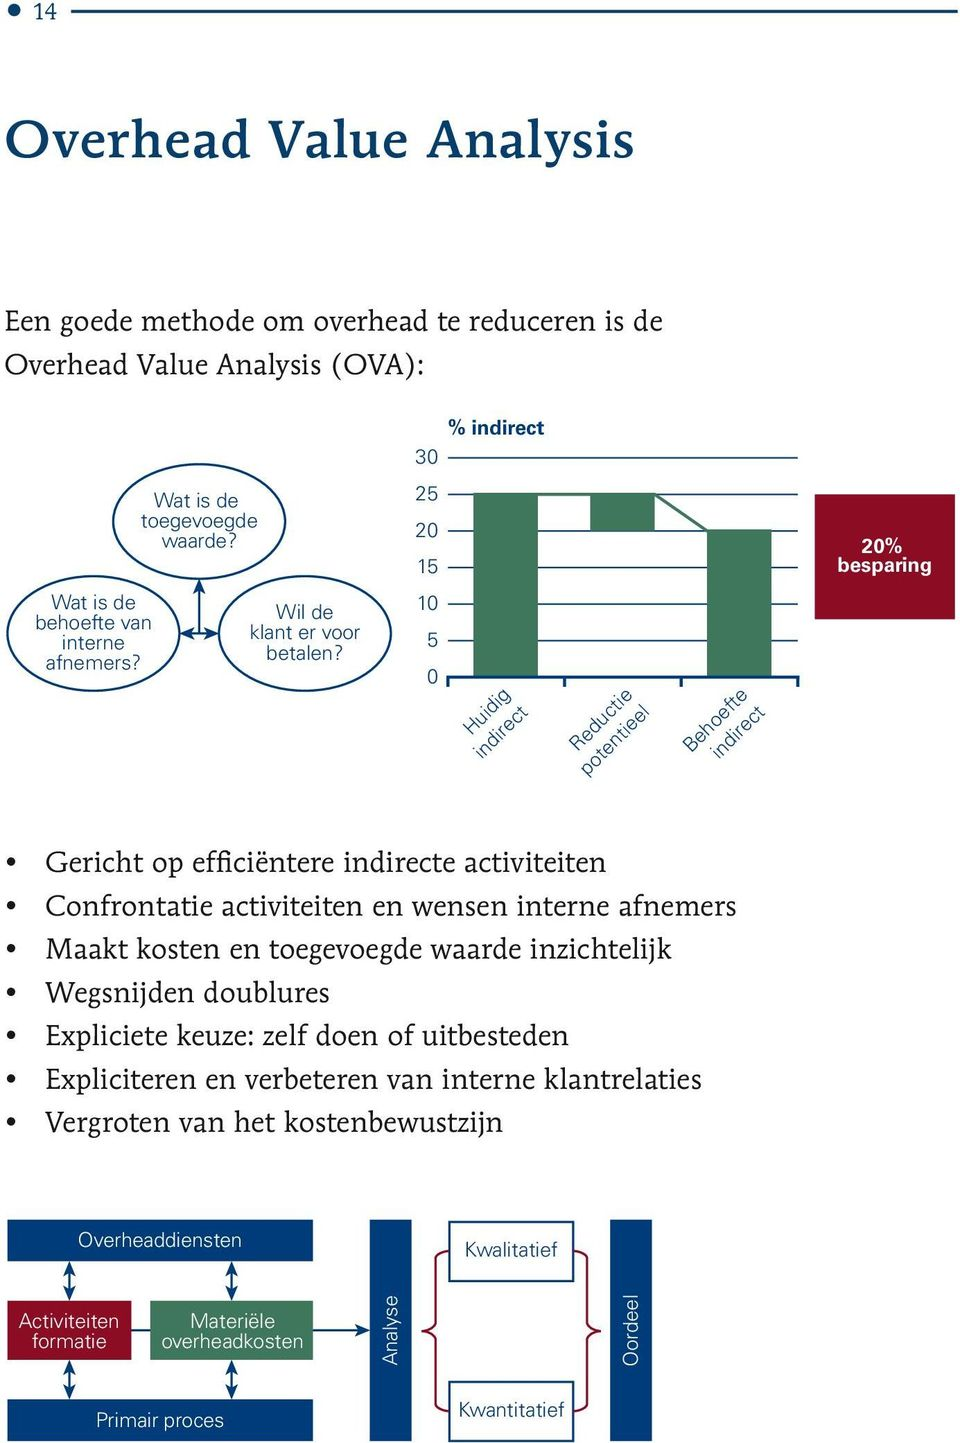 % indirect 30 Overheaddiensten efficiëntere indirecte 25 Primair proces Oordeel Materiële overheadkosten Kwalitatief Analyse Activiteiten formatie Be h in oe di ft re e ct in Overheaddiensten po Red